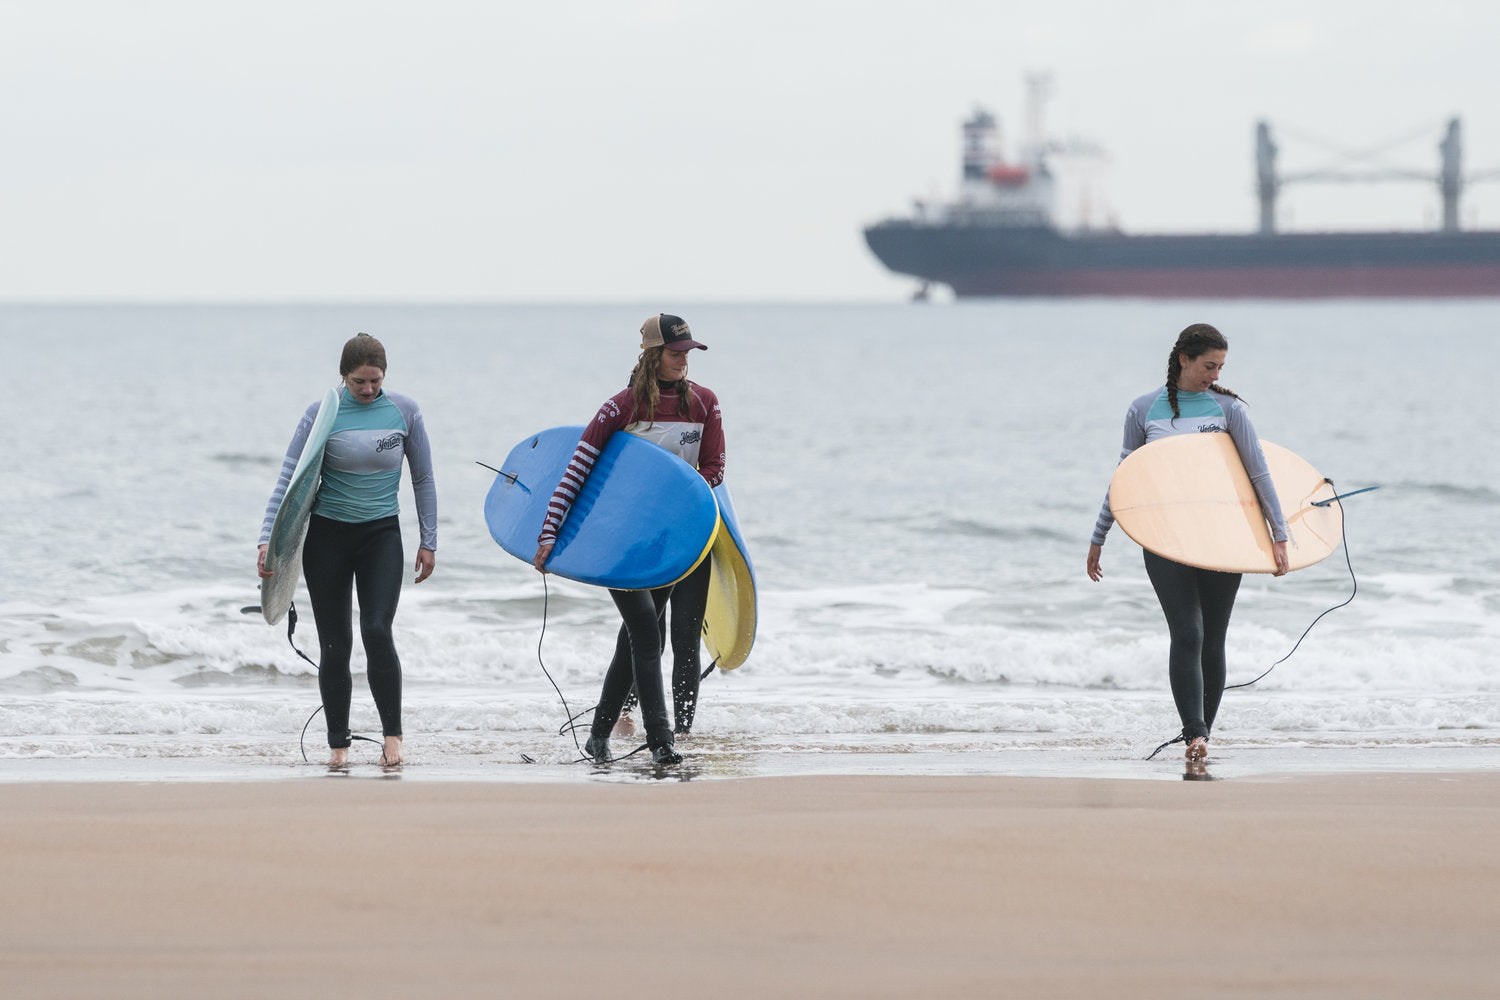 Sally McGee emerges from the water after teaching a surf class with the girls from Yonder - Image Credit Tom Bing